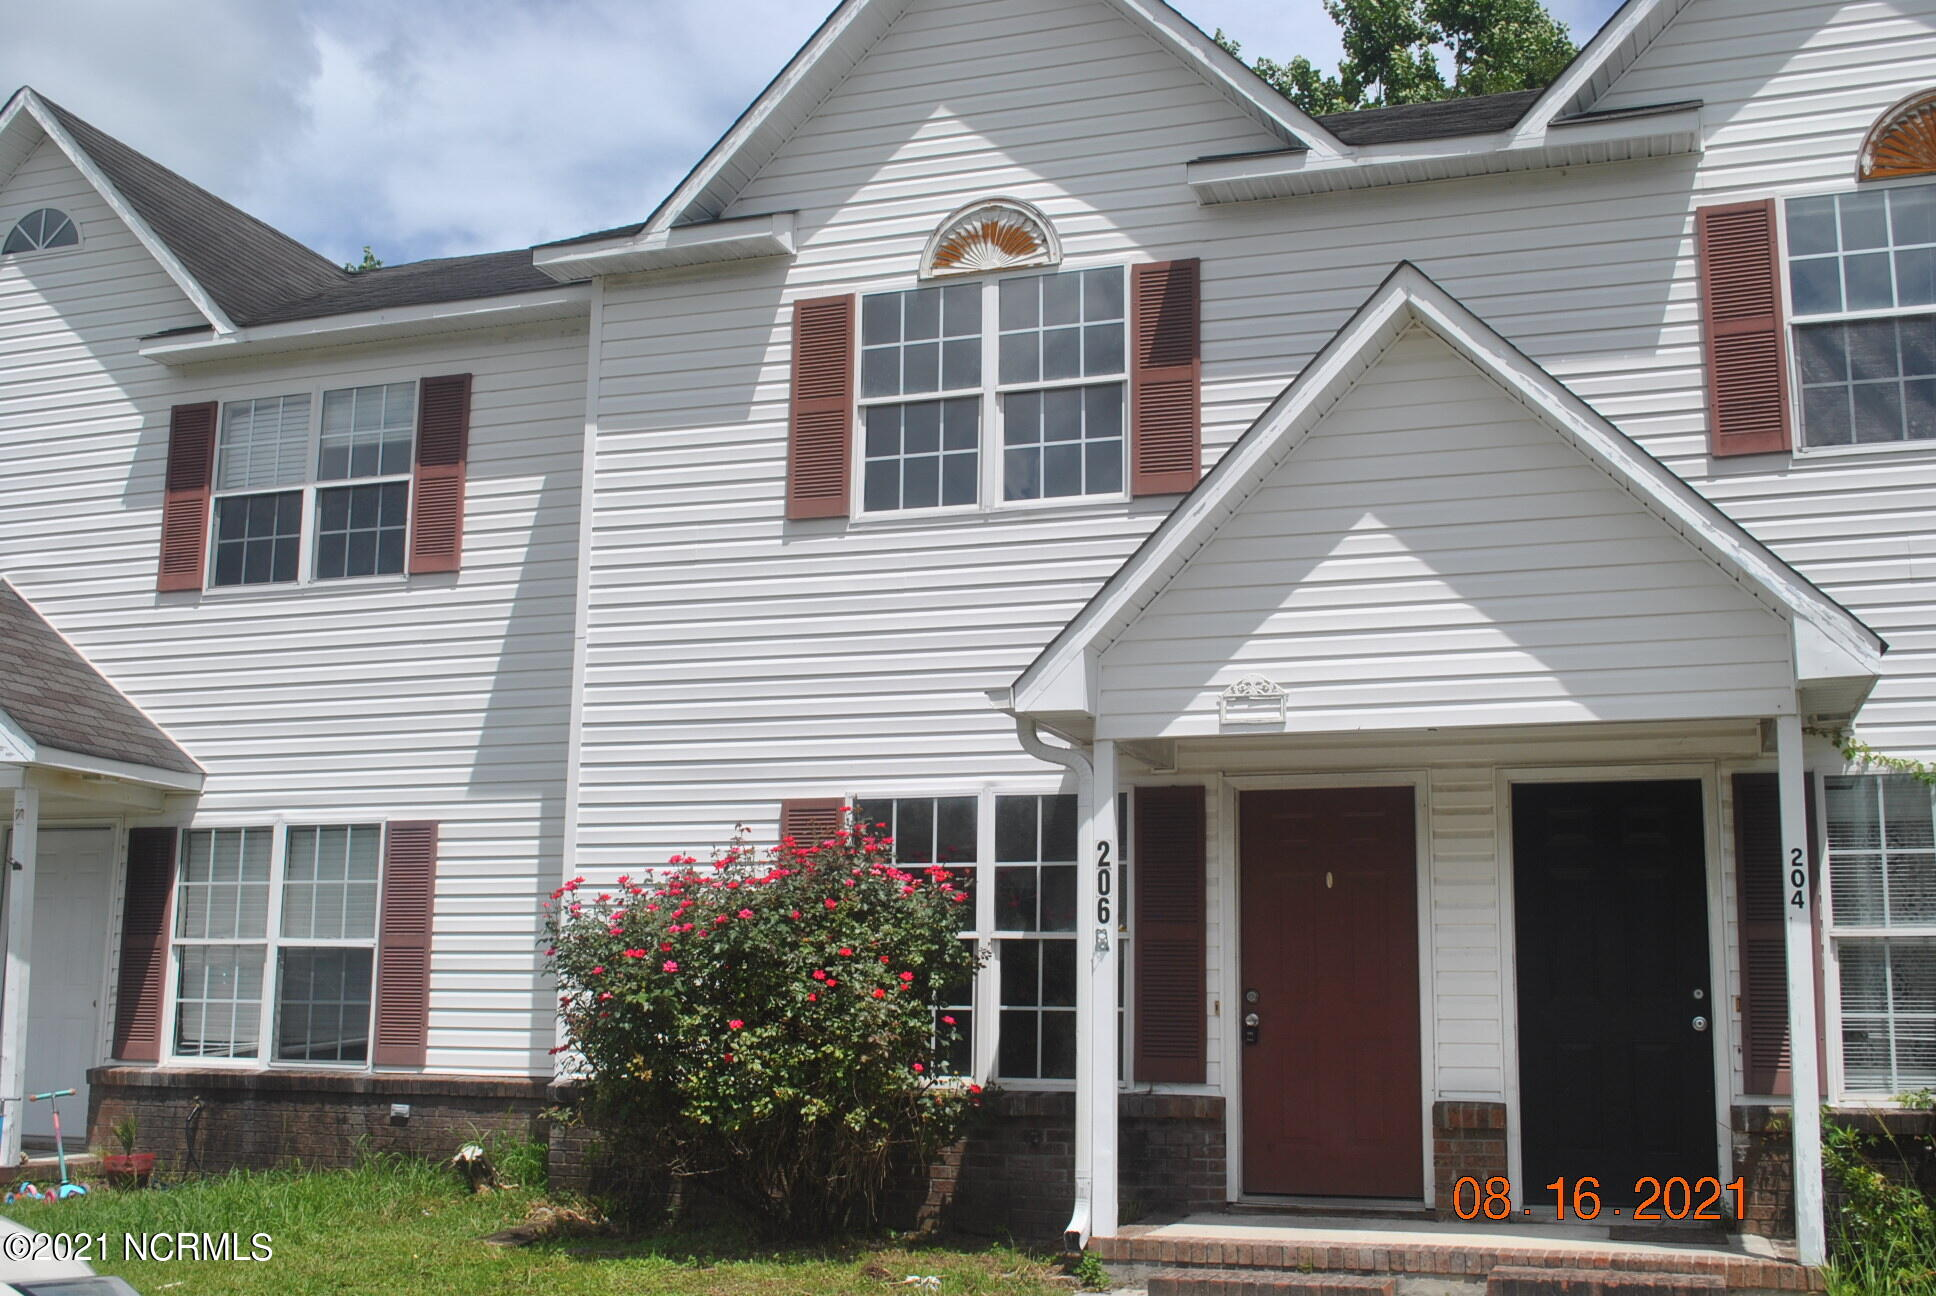 Two bedroom, townhome located in Indian Wells at Hunters Creek, just minutes to Camp Lejeune Main Gate.  Downstairs Laminate flooring was just replaced and entire unit was repainted.  Two full bathroom upstairs and a half bathroom on the ground level.  Maintenance free vinyl siding.